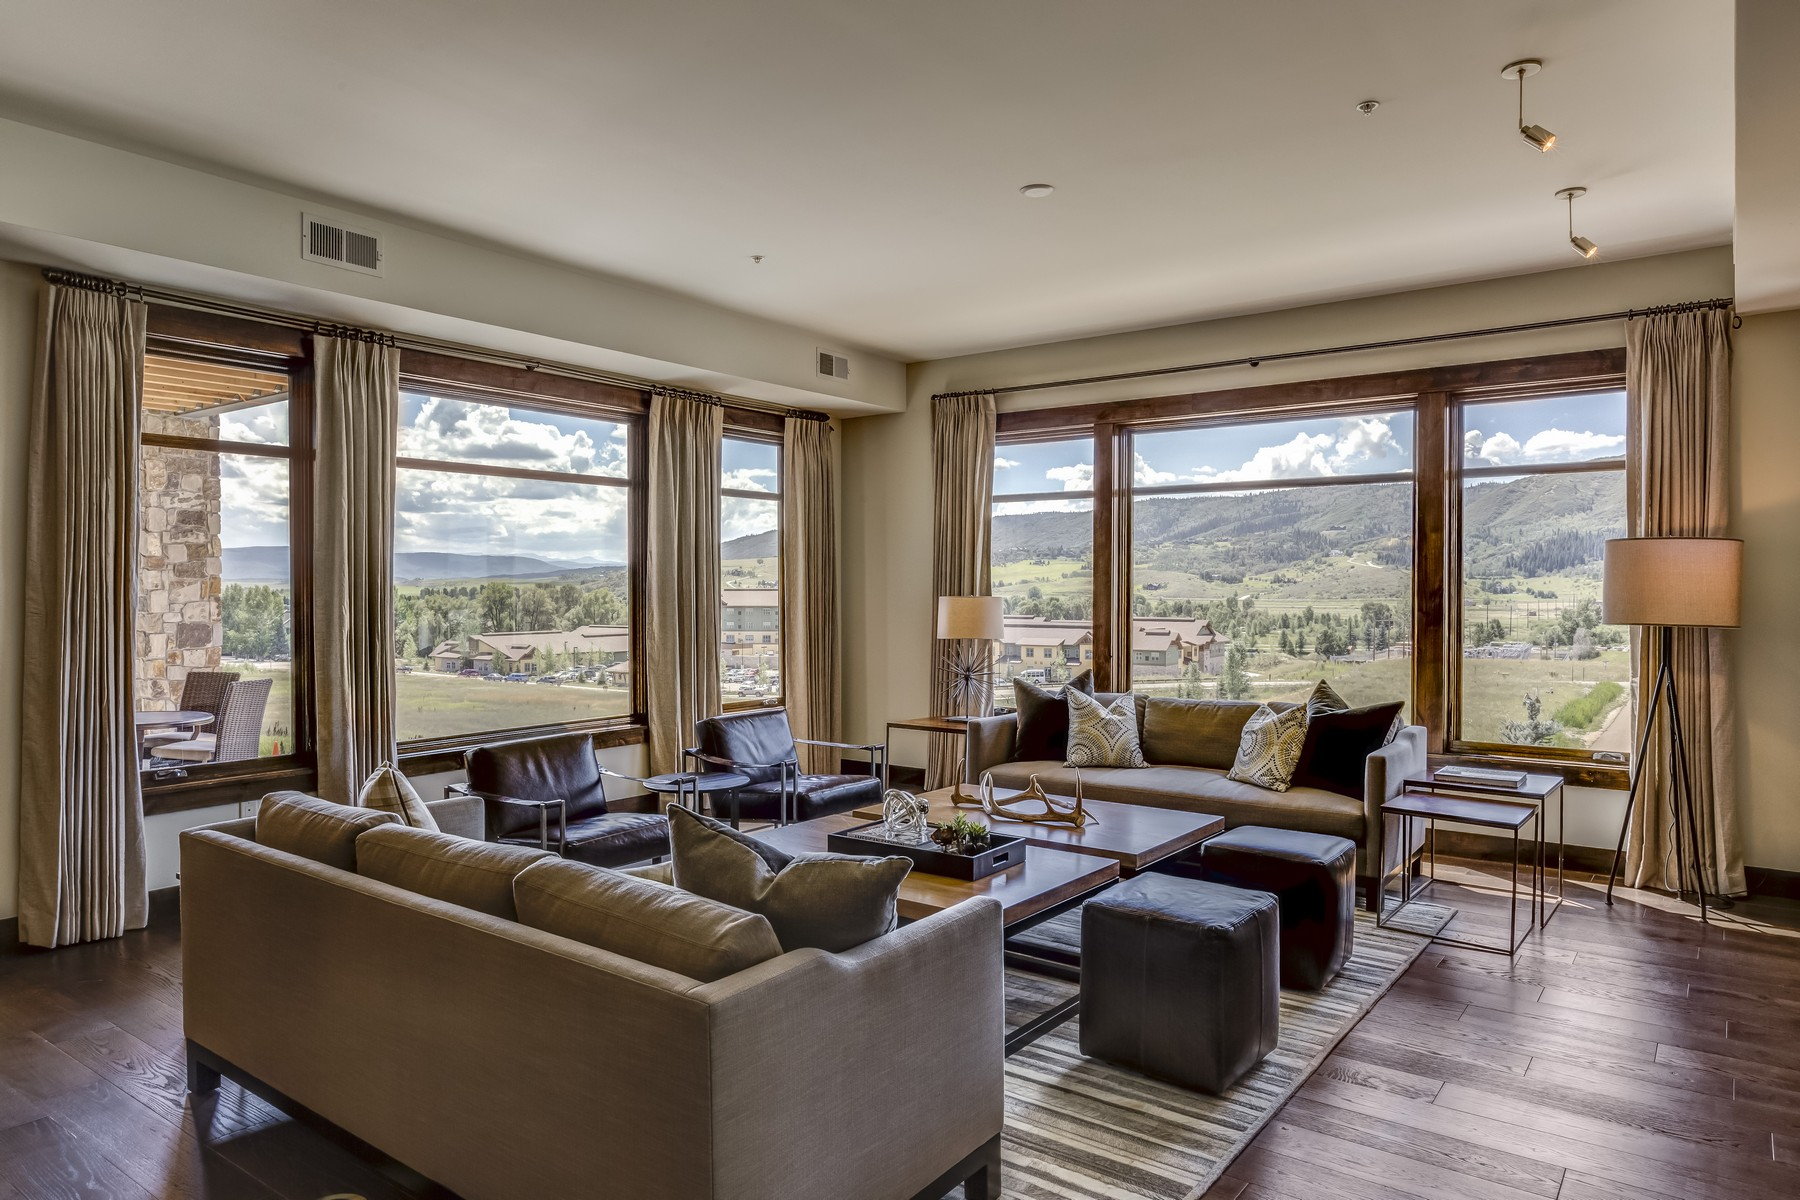 Condominium for Sale at Chadwick Flats 1275 Eagle Glen Dr. Unit 200 Steamboat Springs, Colorado 80487 United States